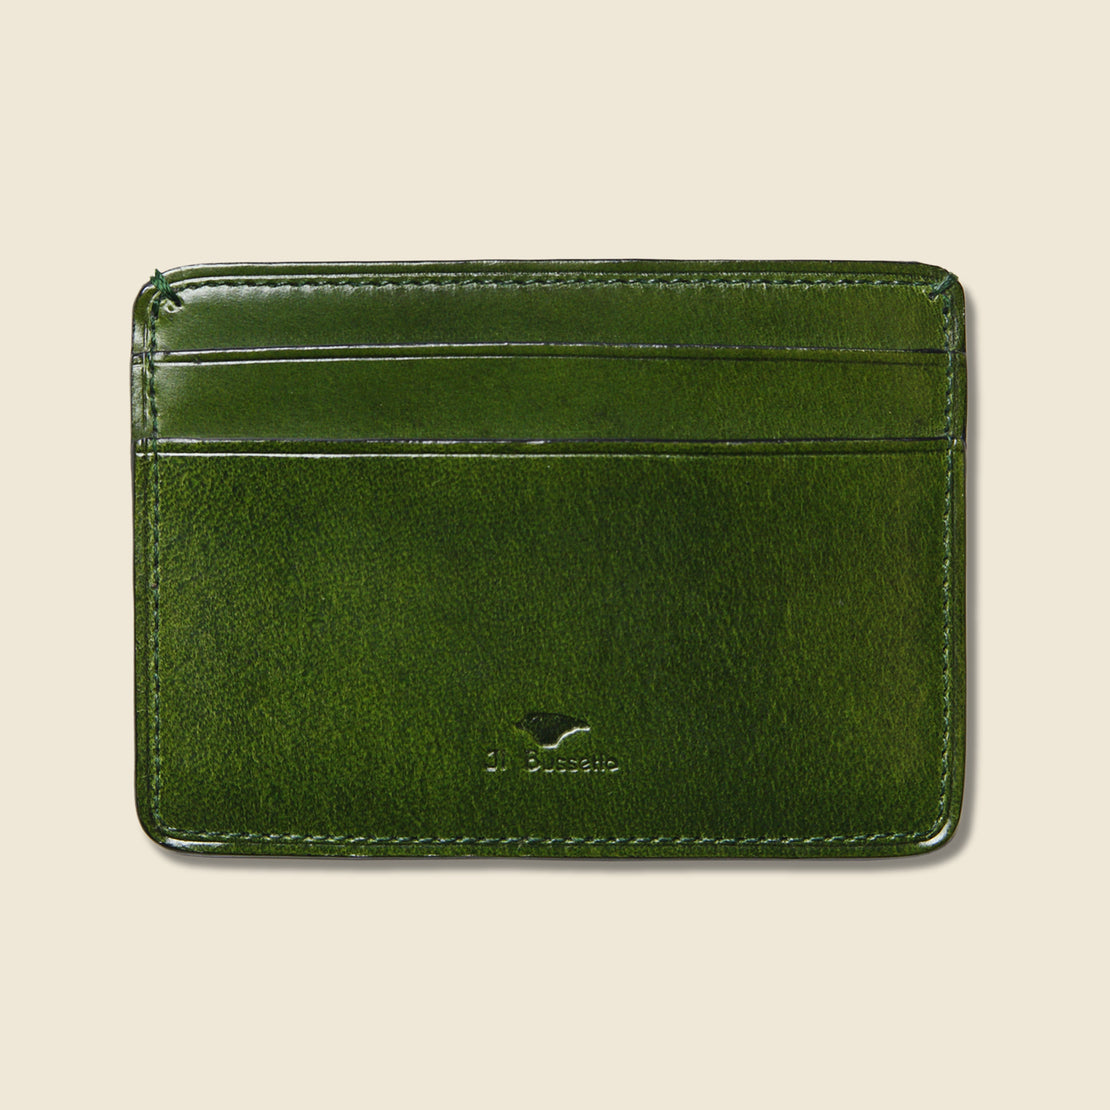 Il Bussetto Credit Card Case - Green